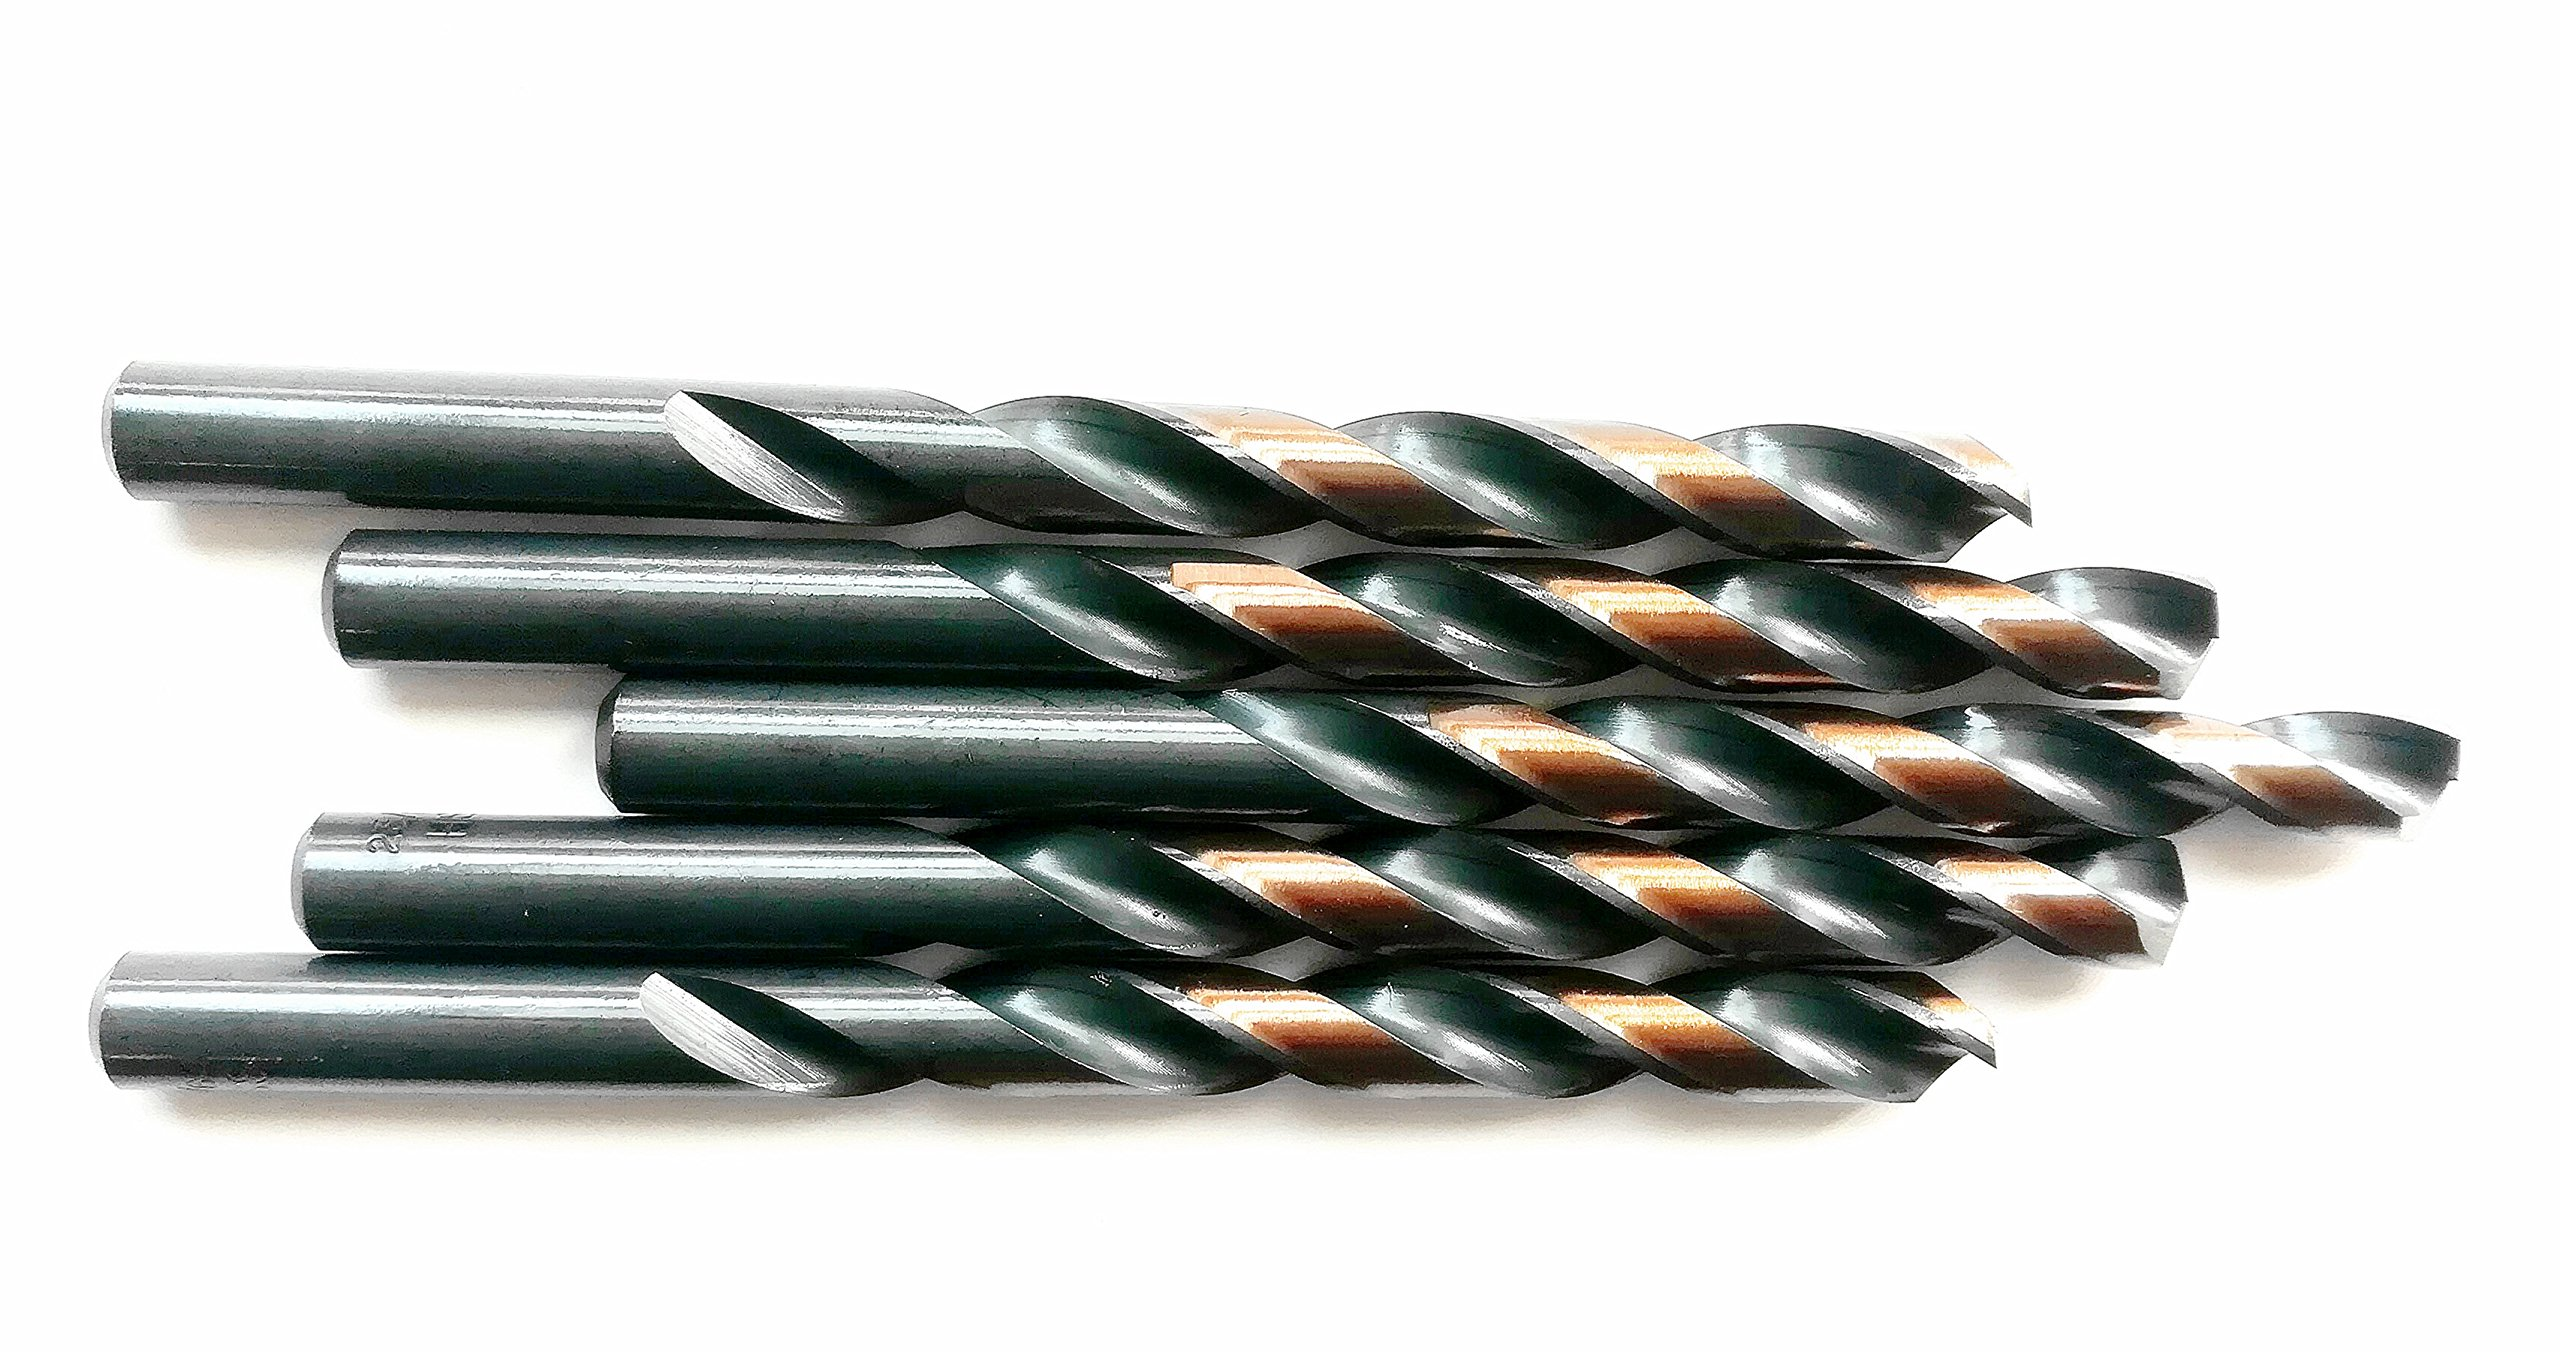 5PCS,7/16'', HSS Jobber Length Black and Gold Coated Twist Drill Bits, Metal drill, ideal for drilling on mild steel, copper, Aluminum, Zinc alloy etc. (7/16)